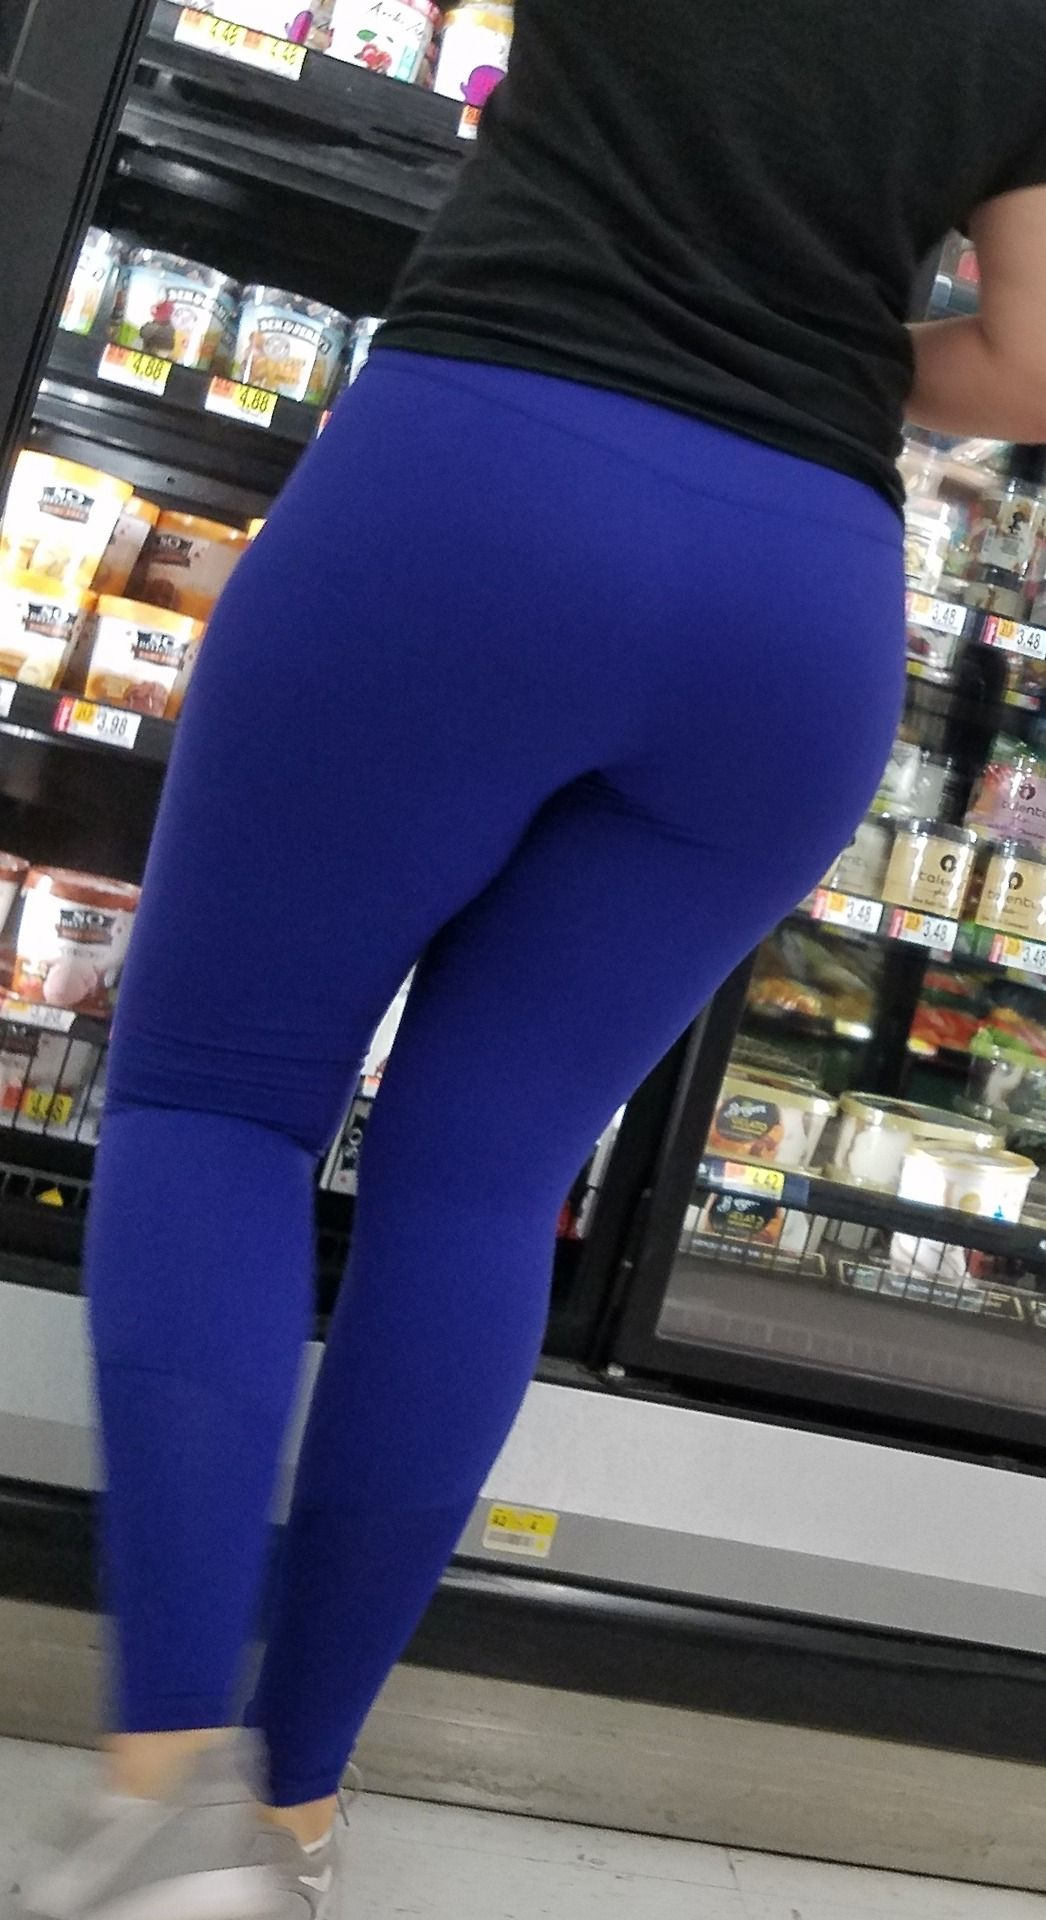 Candid booty gallery